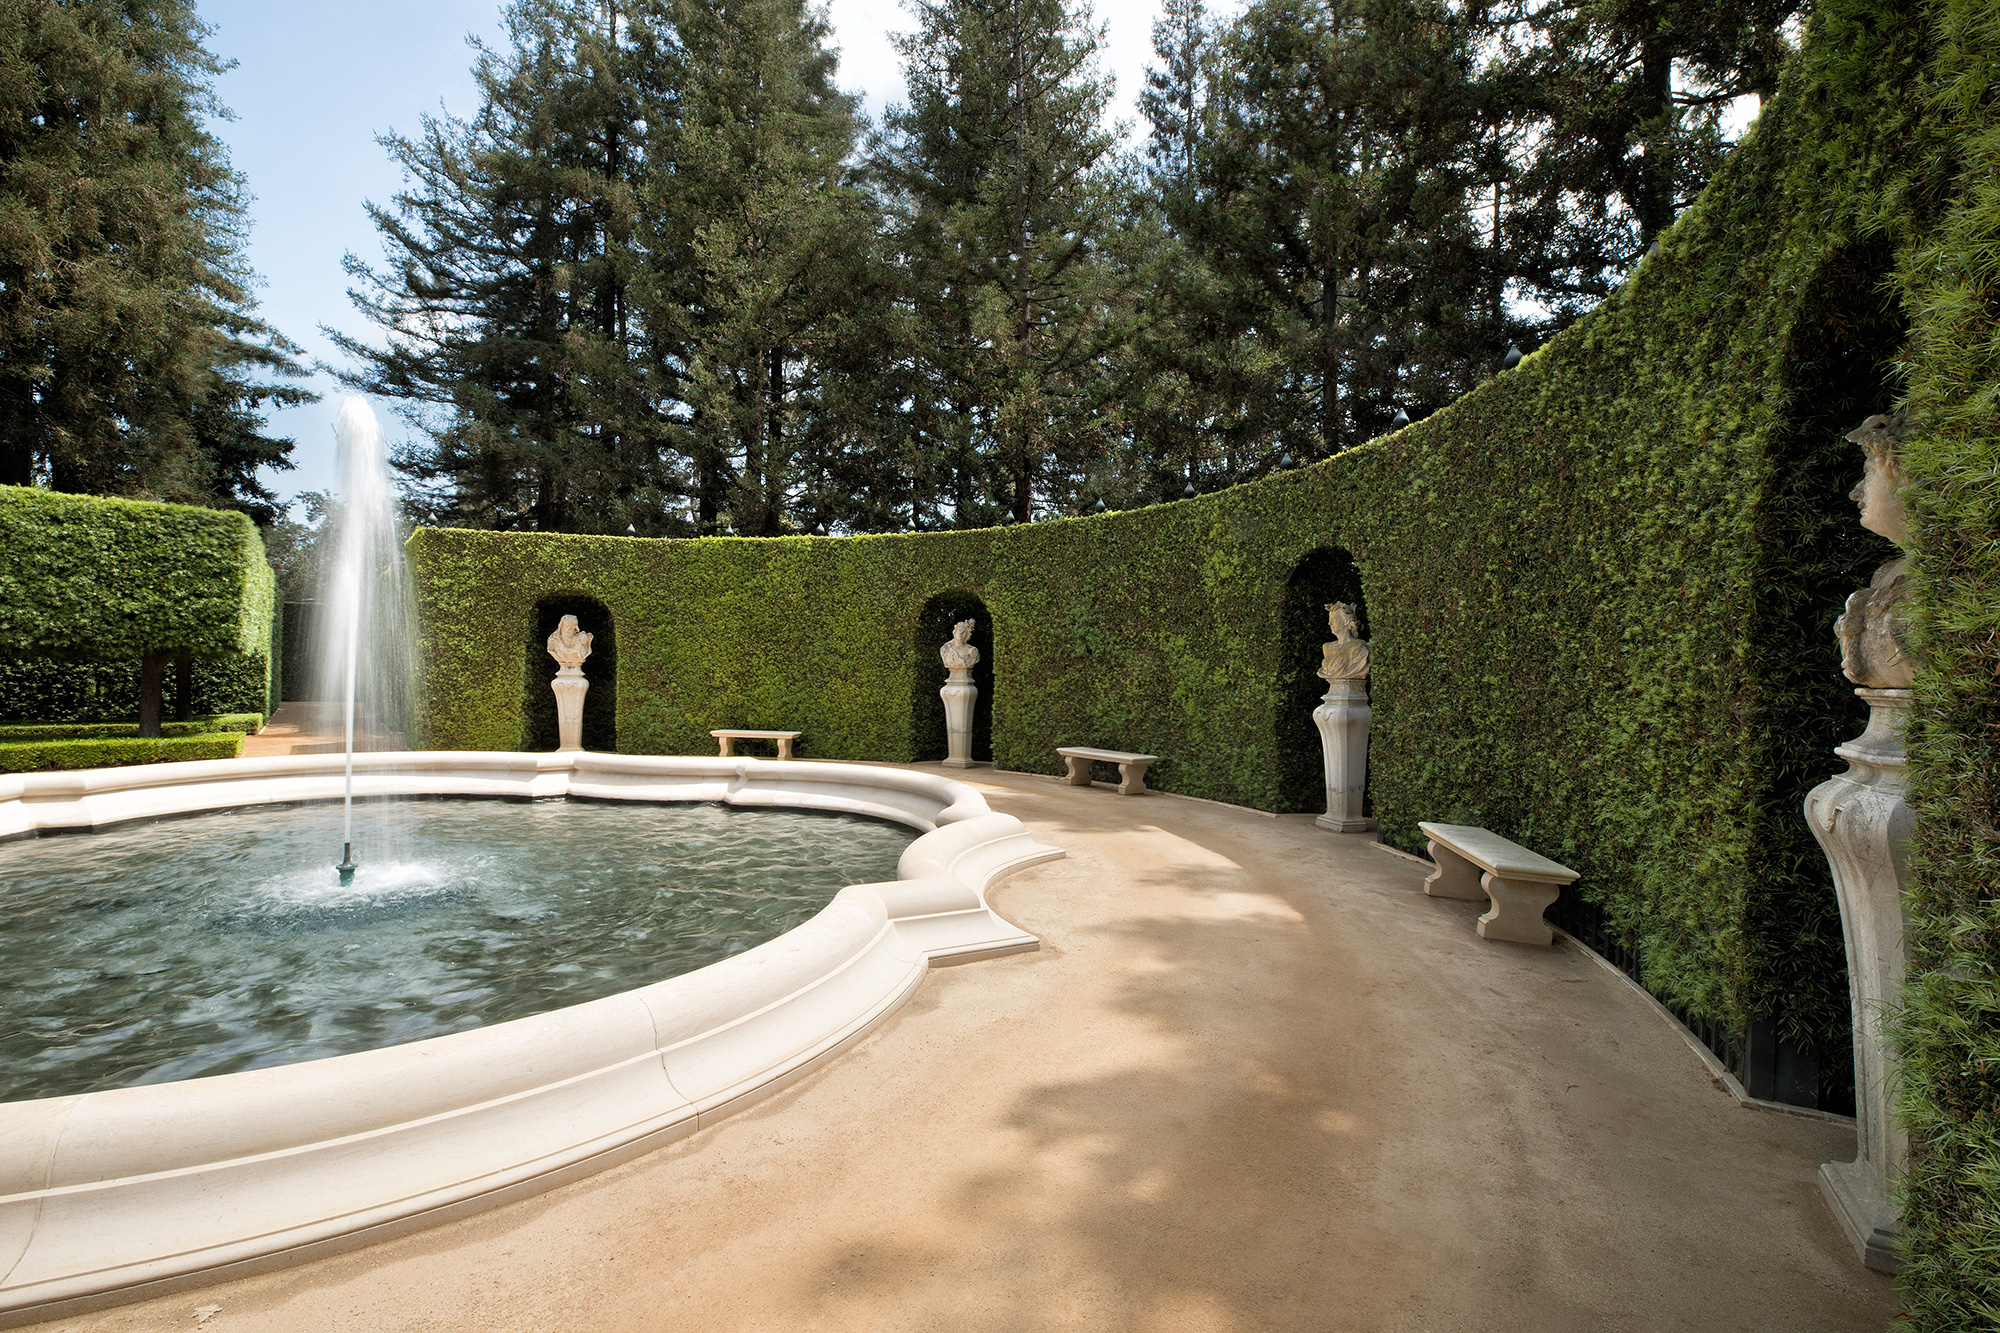 The Real Beverly Hillbillies Mansion for Sale in Bel-Air Just Got a $50 Million Price Chop most-expensive-home-america-fountain